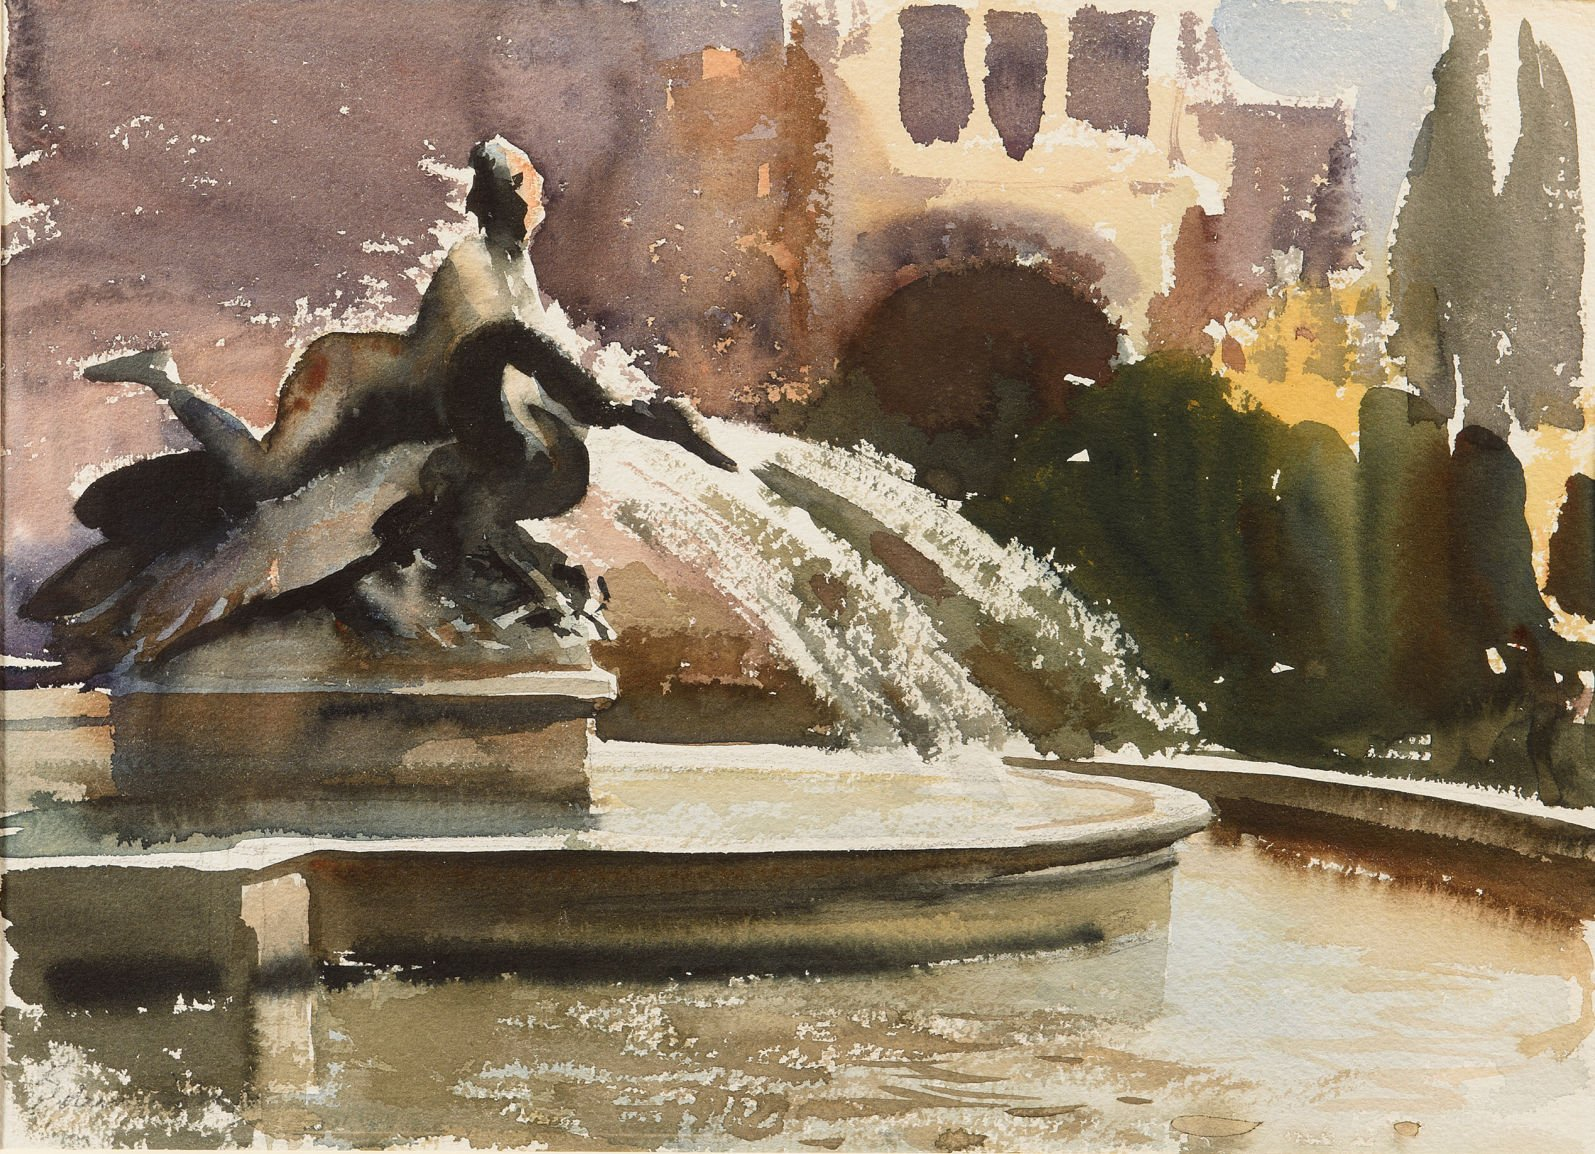 Watercolour painting of a fountain in Rome showing a female figure and swan sculpture and trees in the background by Edward Seago